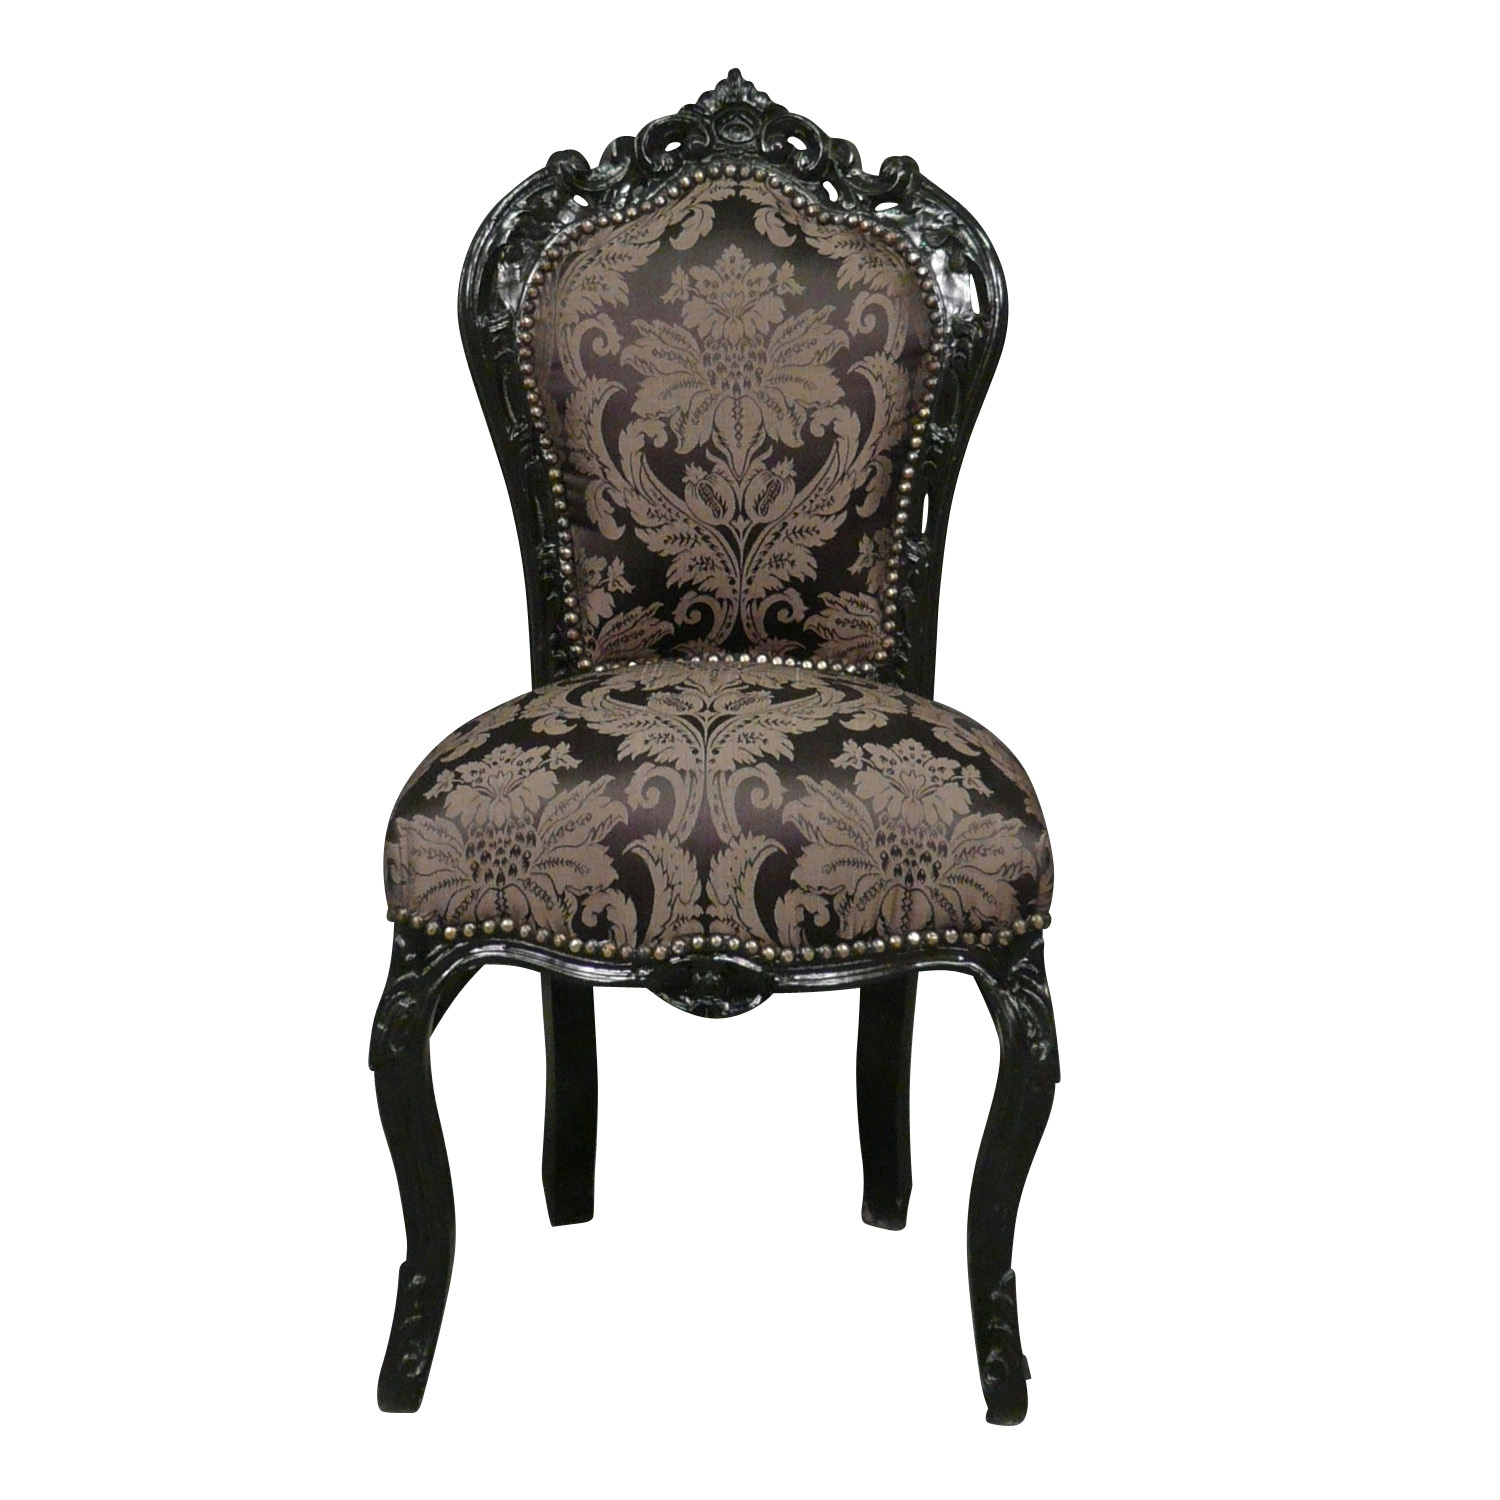 baroque chair gallery armchair. Black Bedroom Furniture Sets. Home Design Ideas